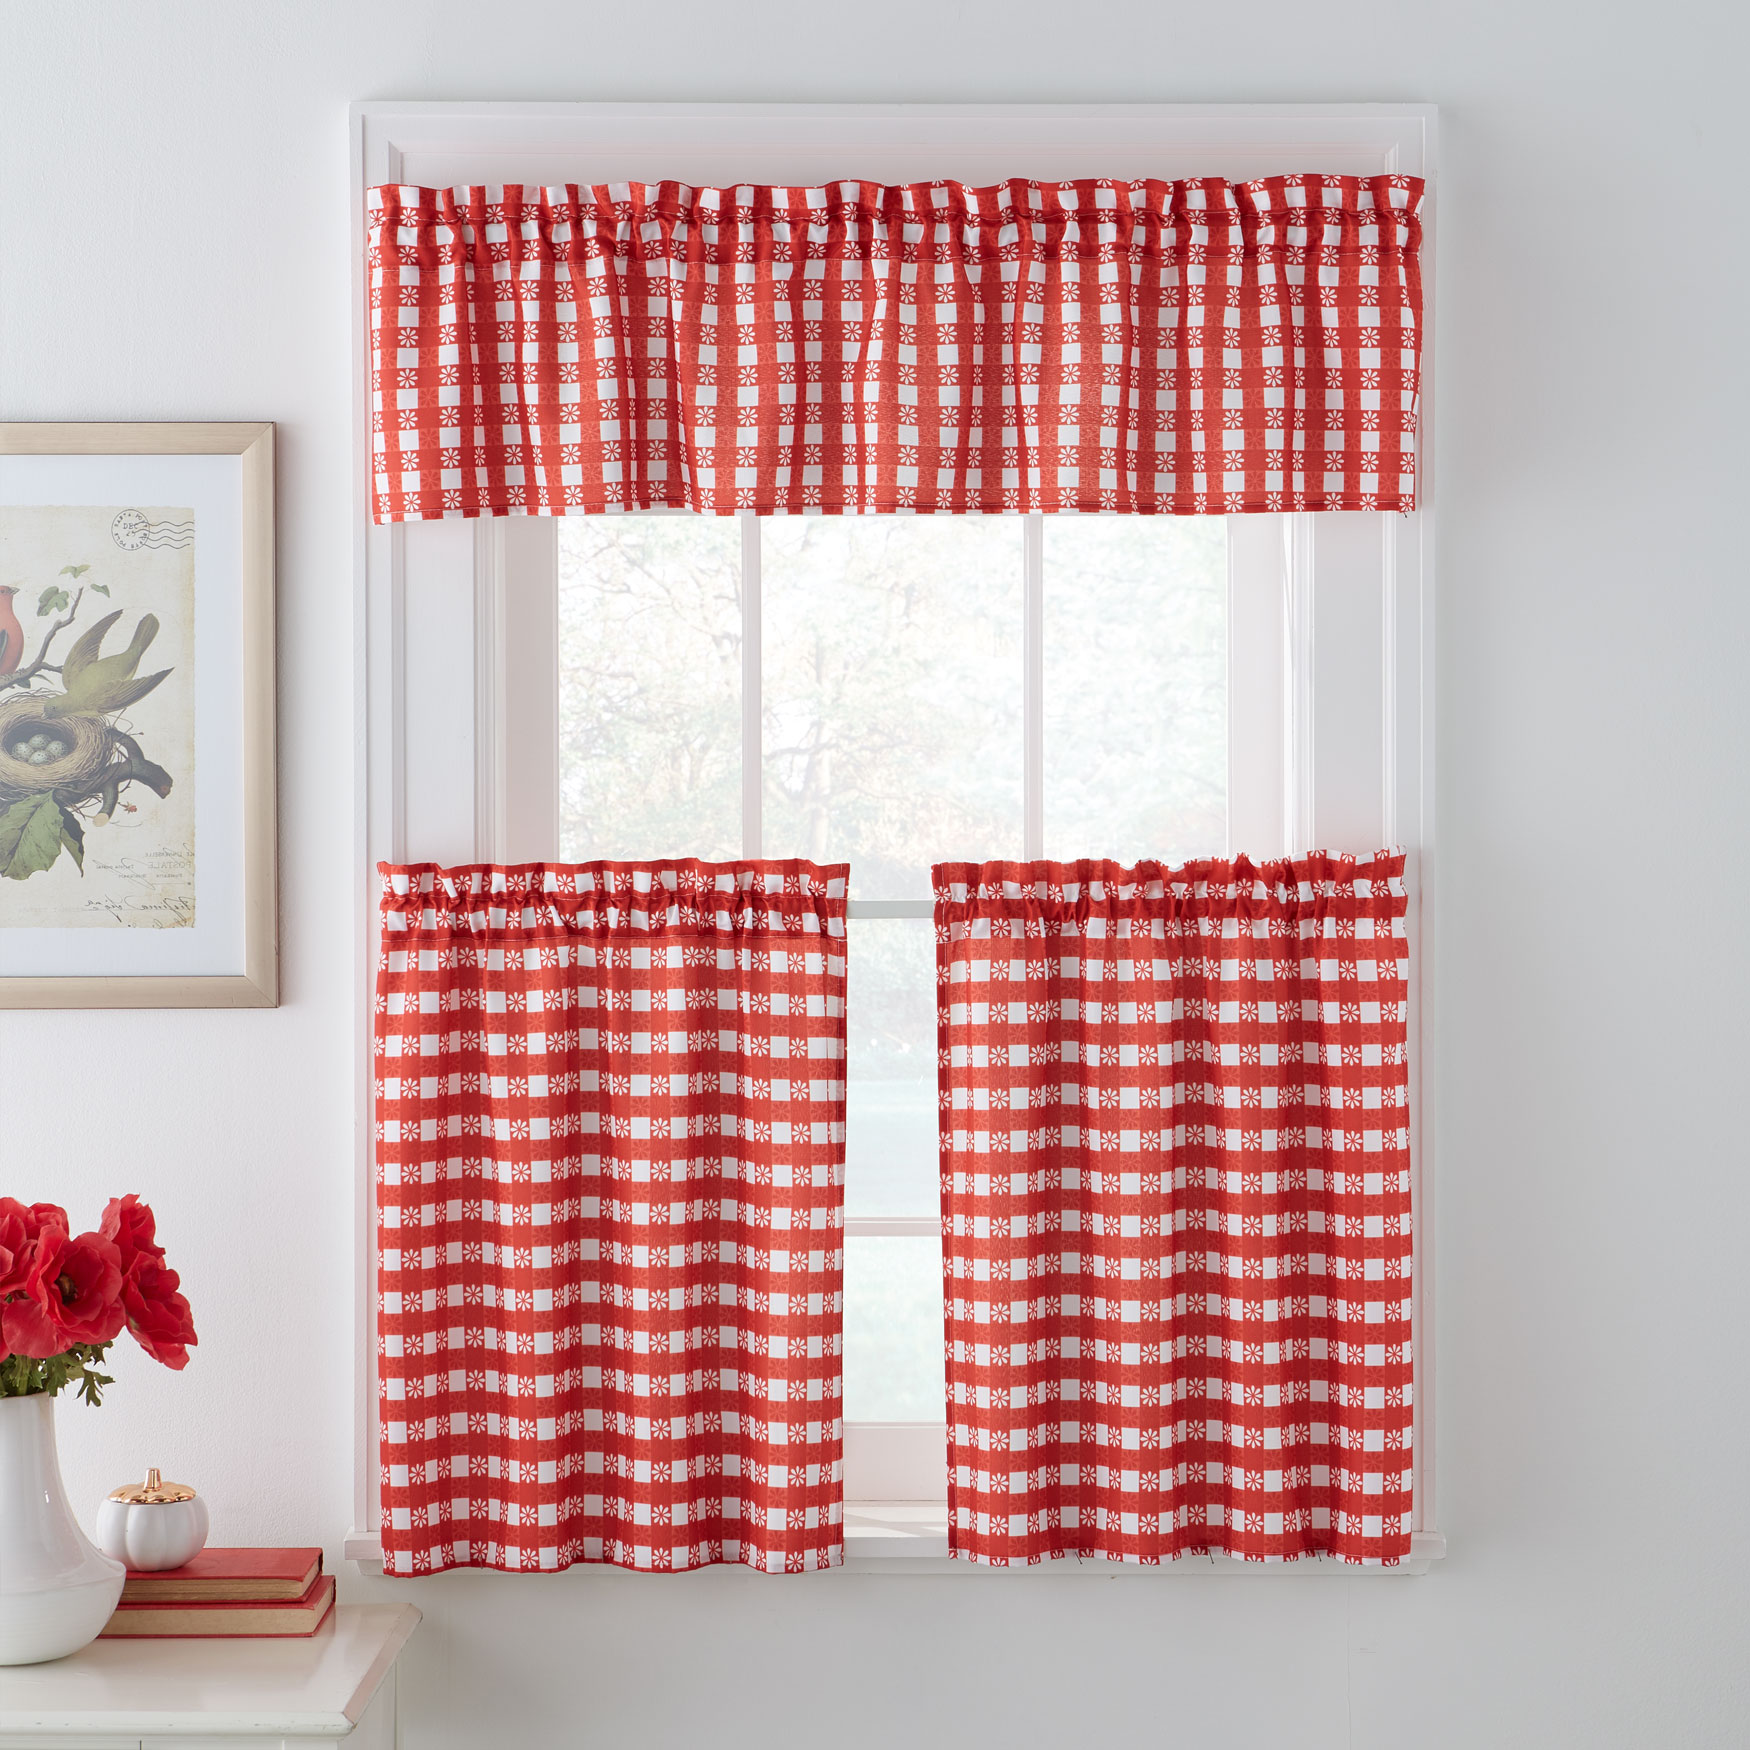 Picnic Window Collection,